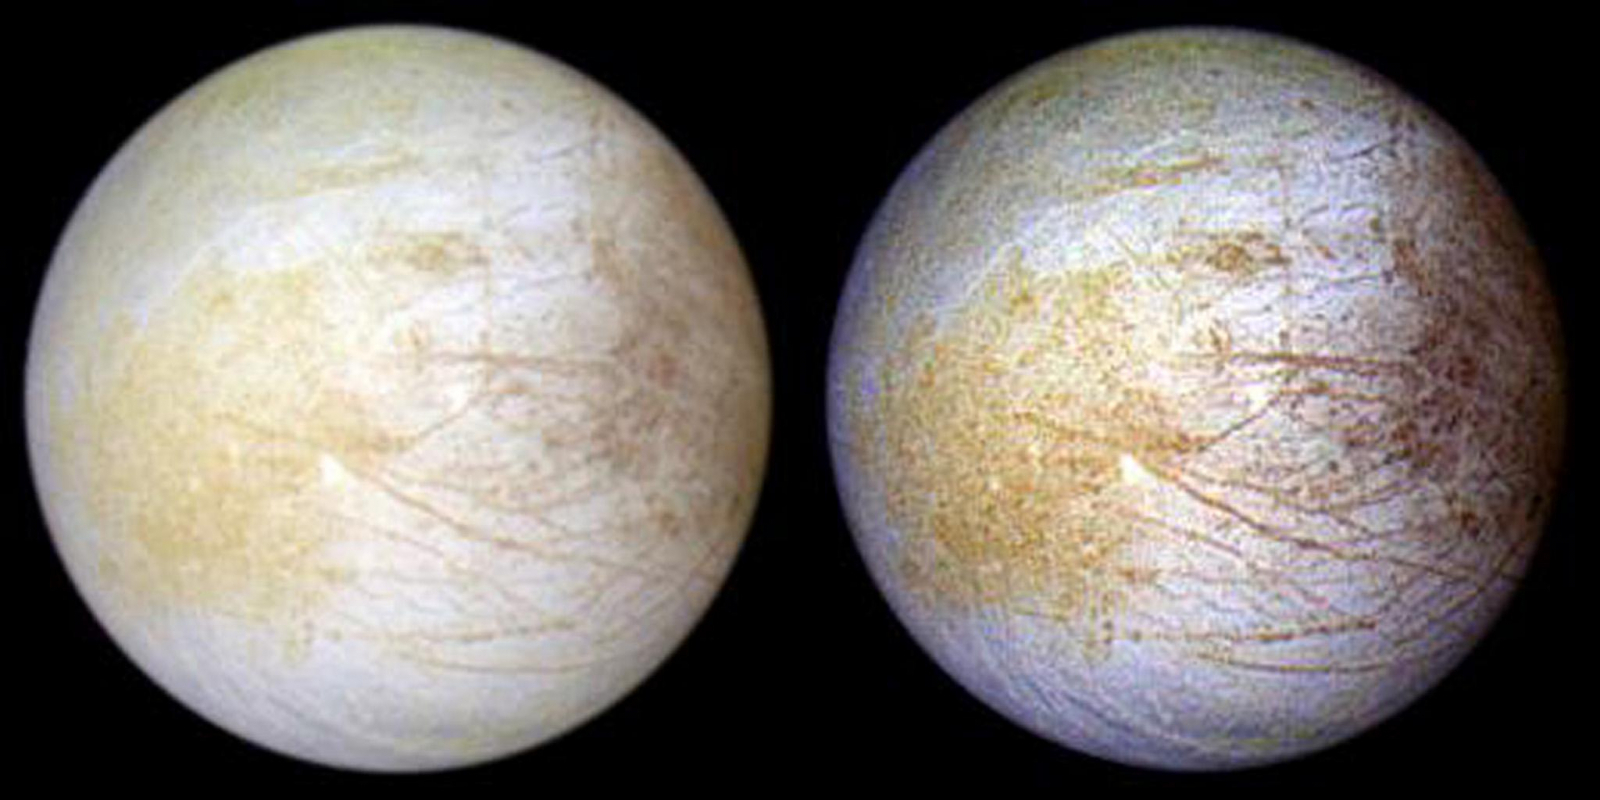 NASA Scientists Detect Water Vapor on Europa